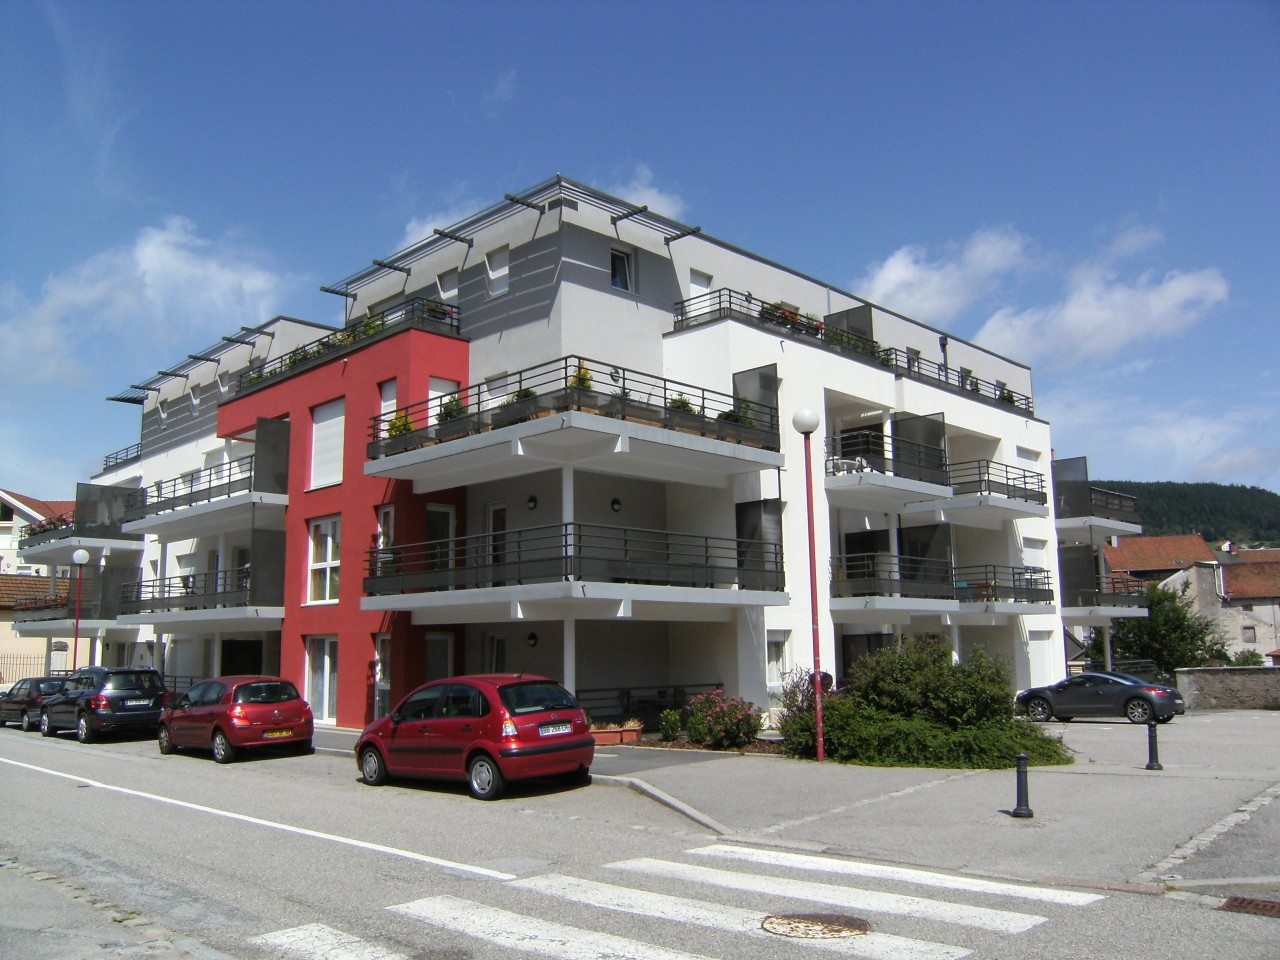 Agence immobili re g rardmer annonce appartements n 2189 for Agence immobiliere gerardmer